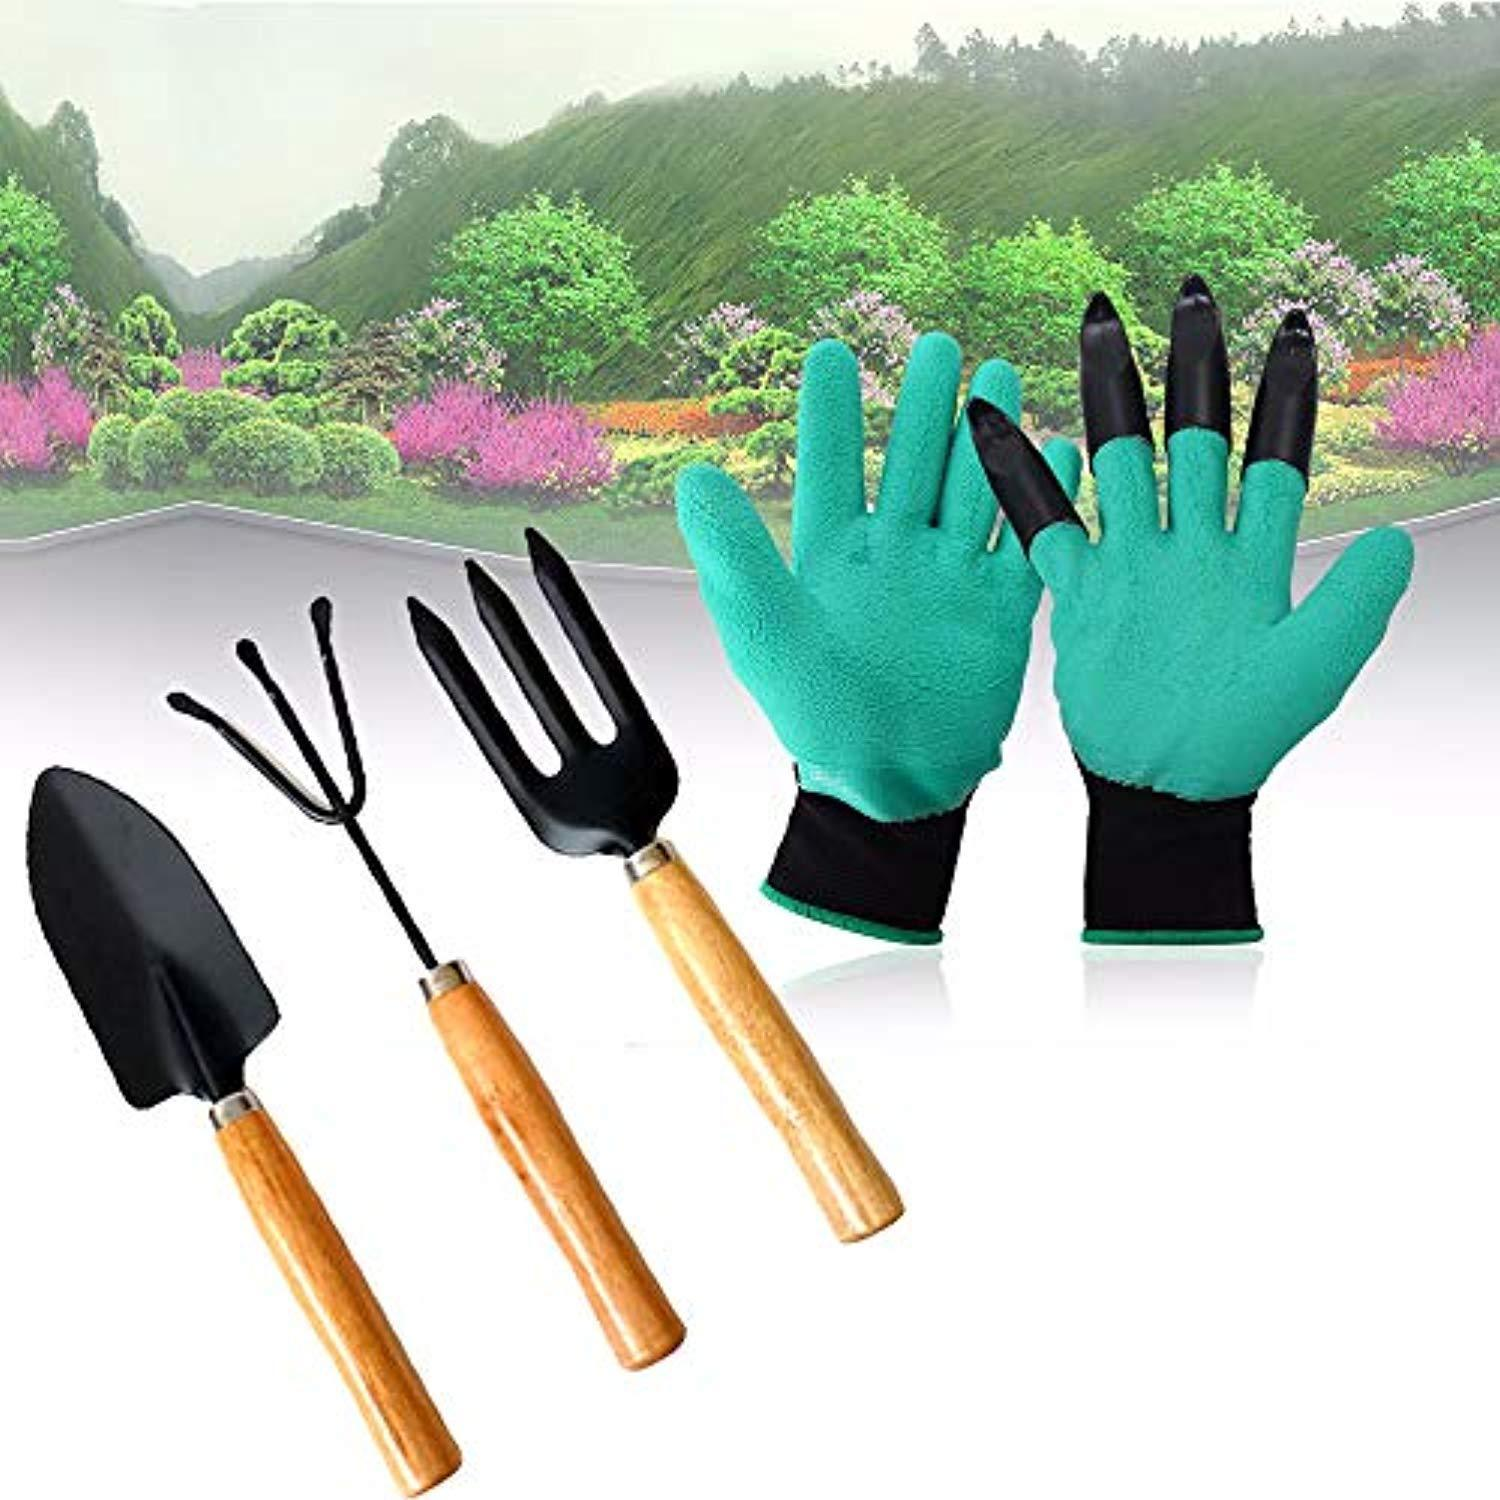 Gonowtoday Gardening Hand Cultivator, Big Digging Trowel, Shovel & Garden Gloves with Claws for Digging & Planting